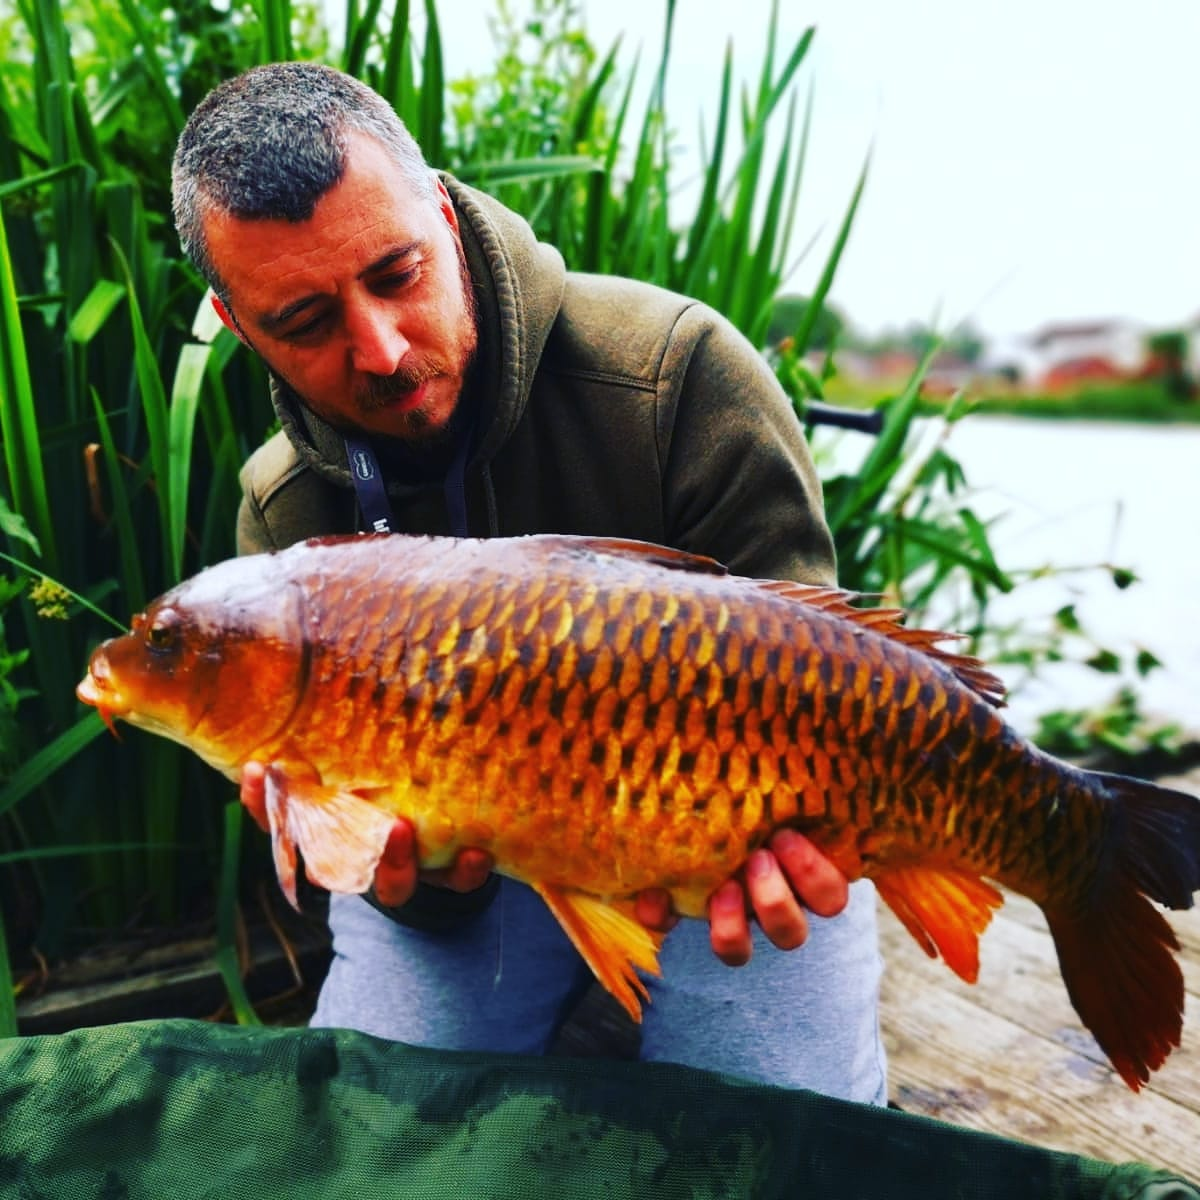 Beautiful fish 🎣👍#<b>Carp</b>fishing #ccmorebaits #fishingviews #fishing https://t.co/ei7k6662